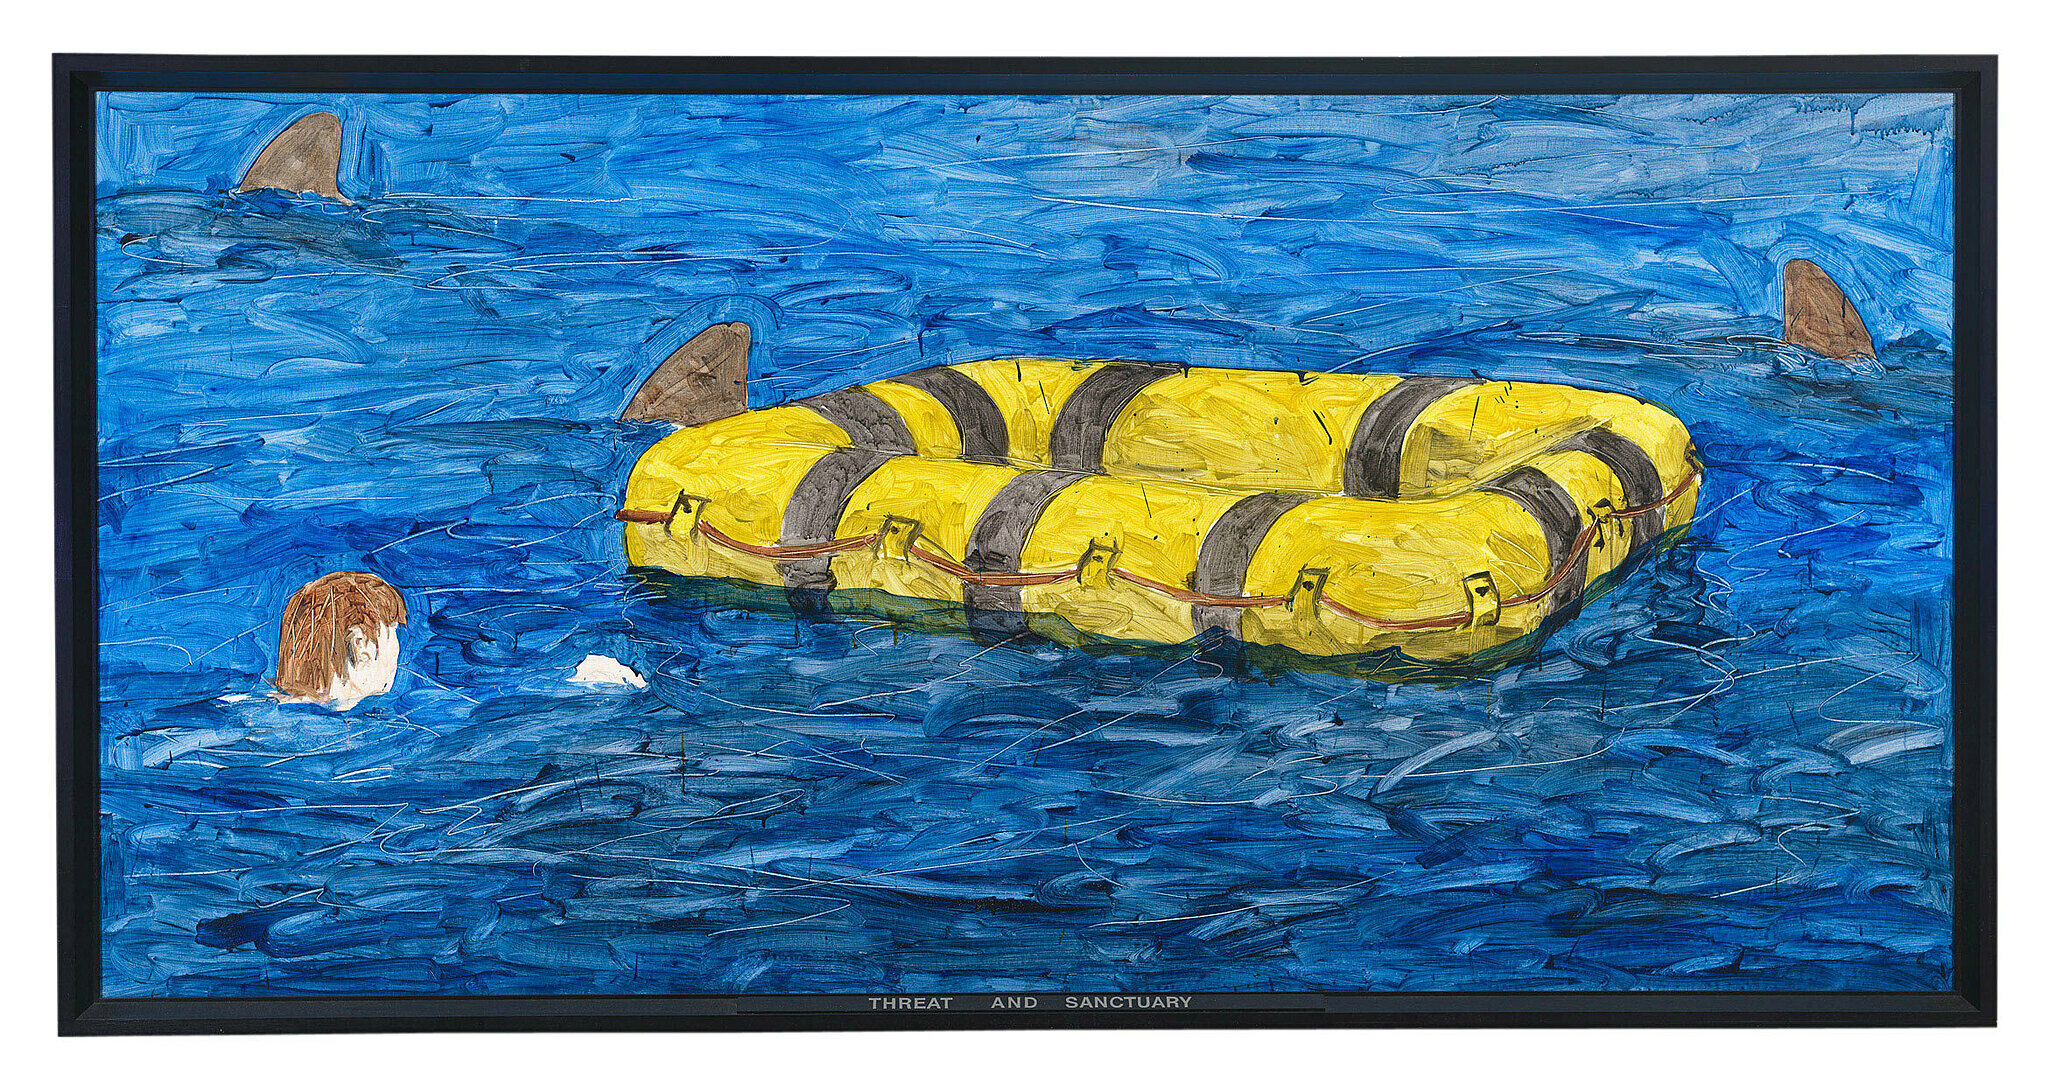 A painting of a person swimming to a life raft surrounded by three shark fins.